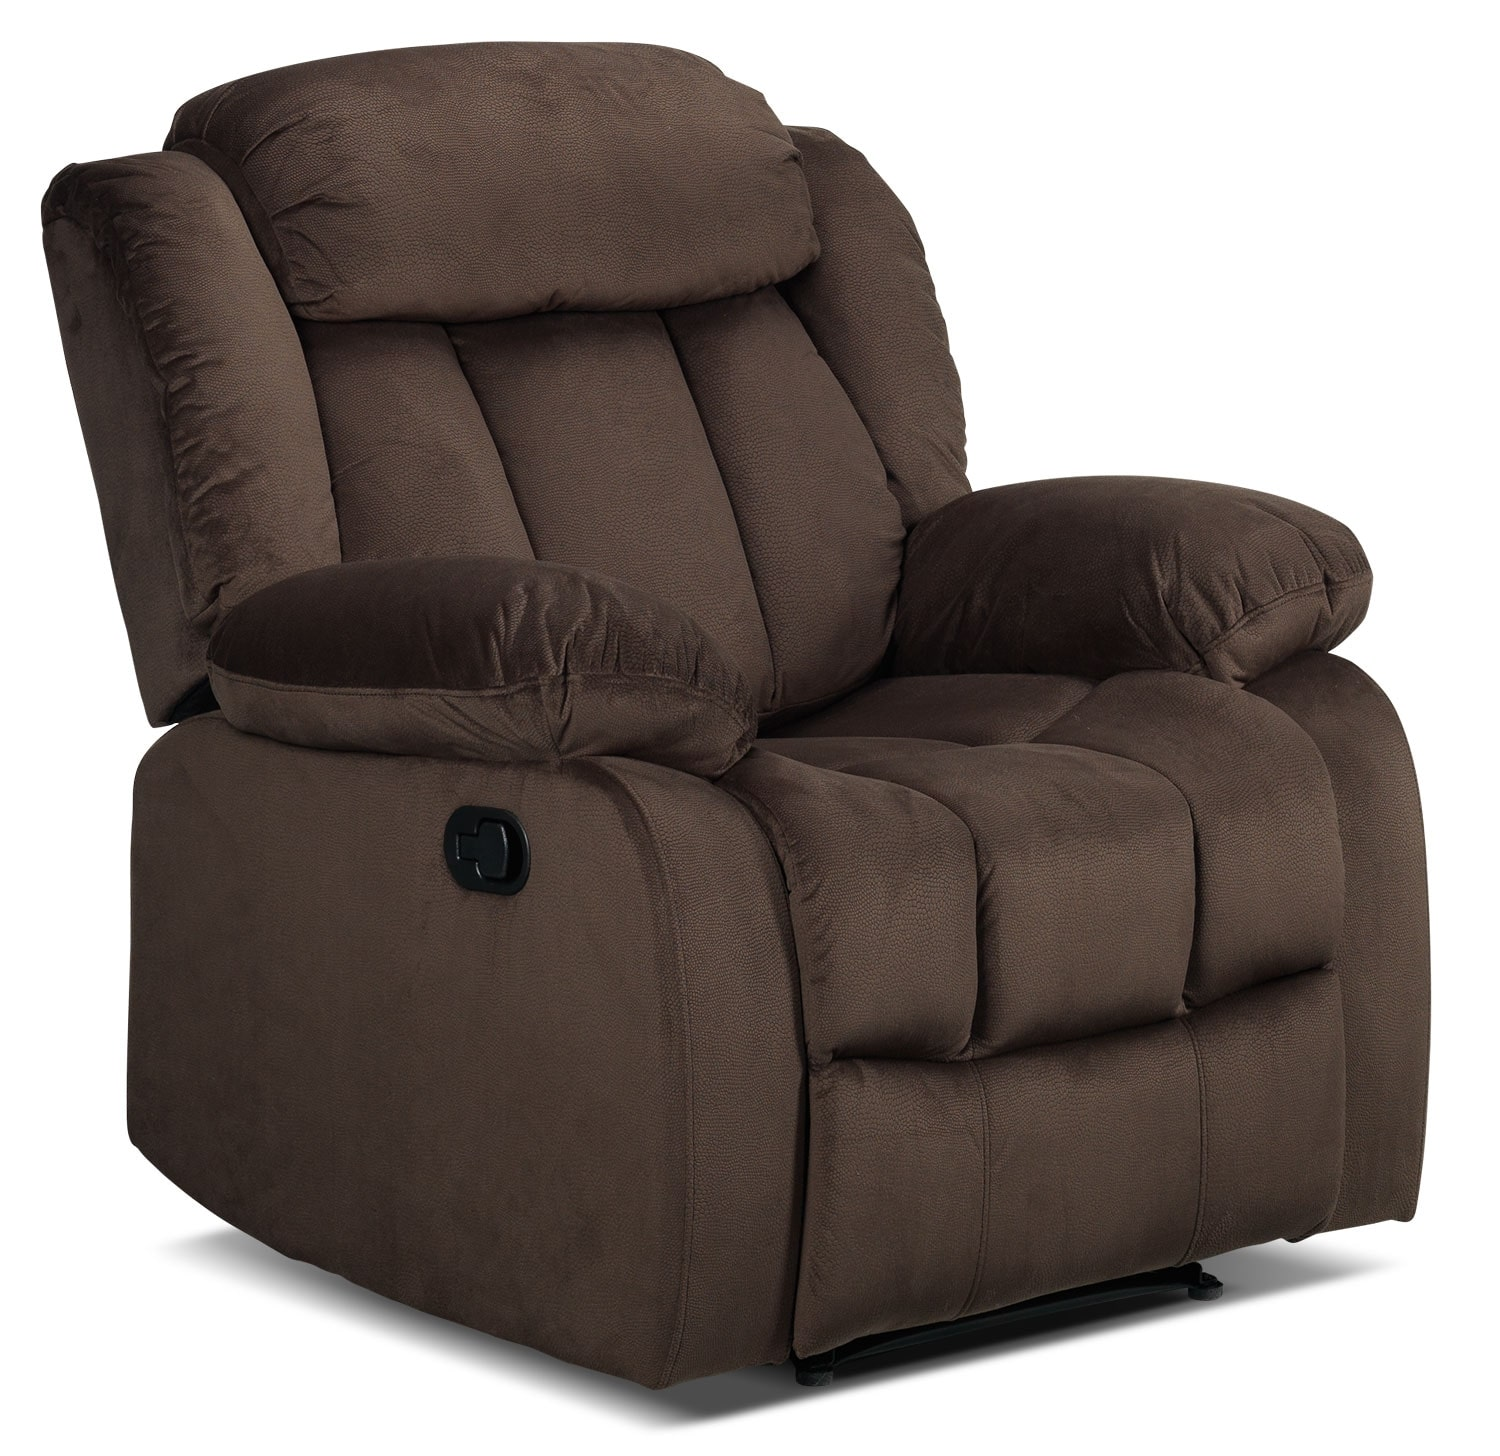 Alabama Recliner